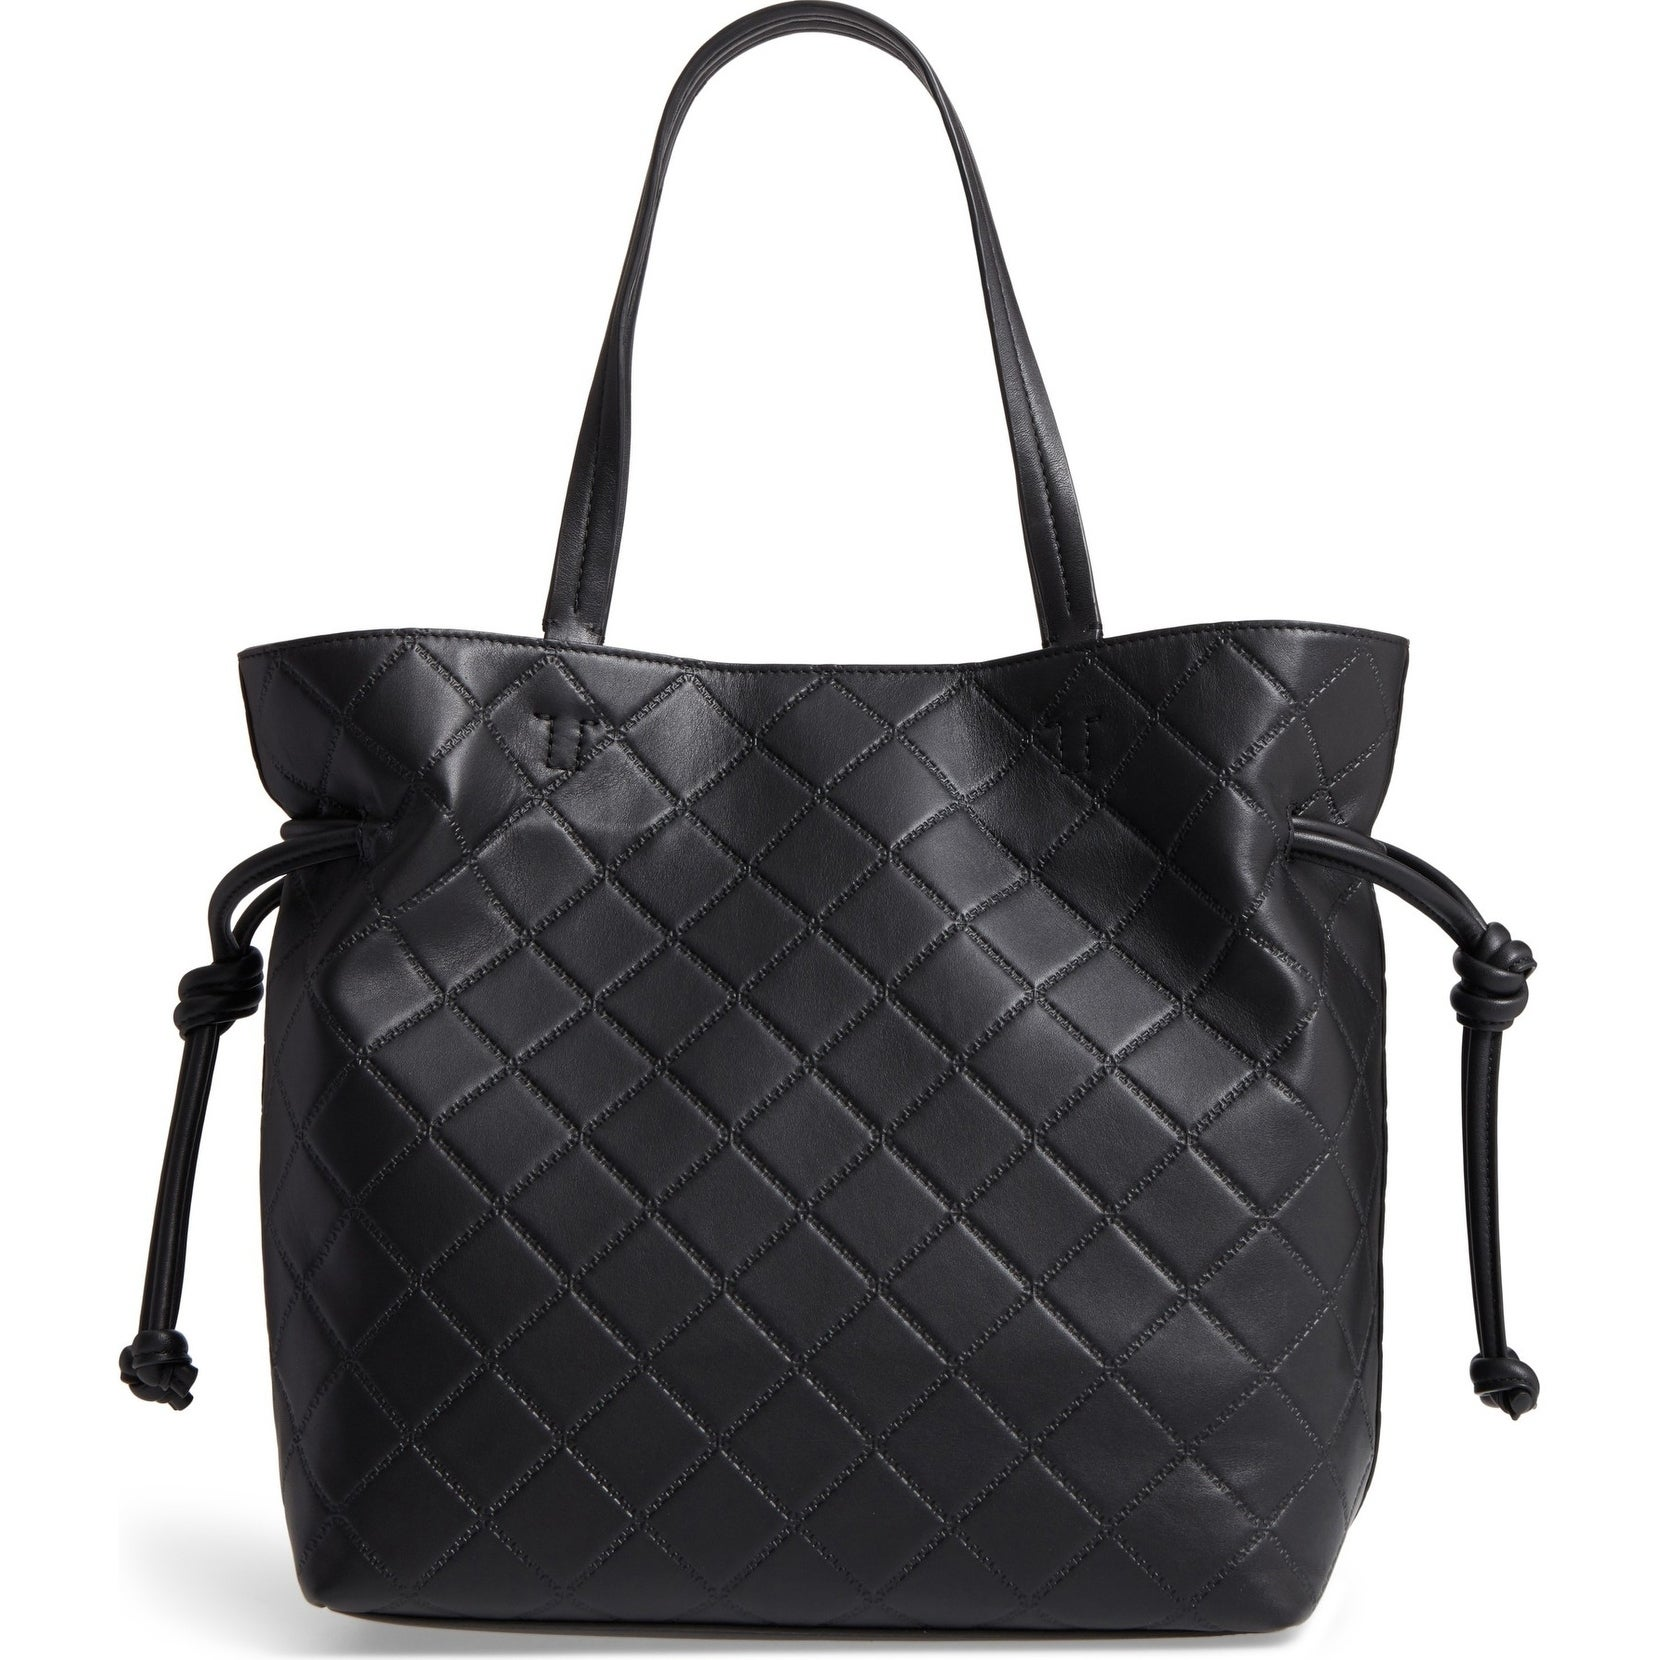 a80b652f89a2 Shop Tory Burch Georgia Slouchy Quilted Black Leather Tote - Free Shipping  Today - Overstock - 22039479